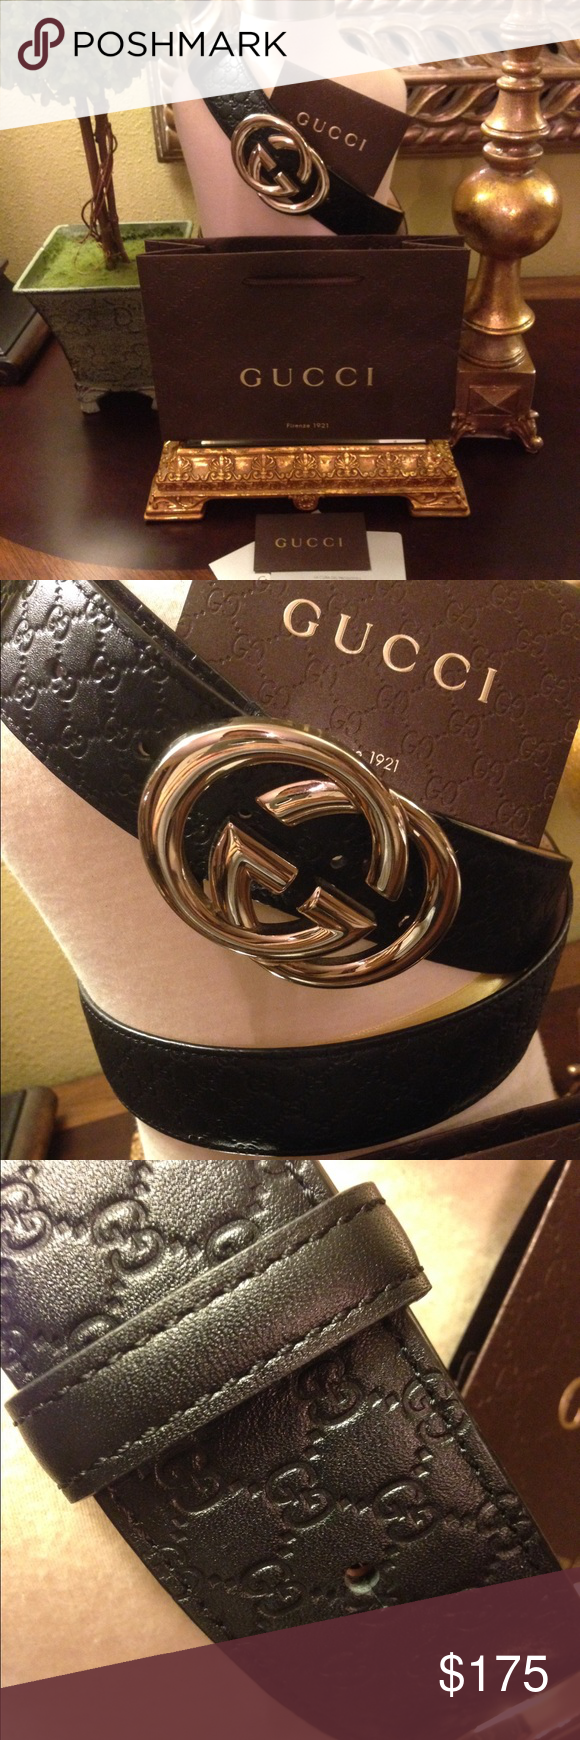 Authentic Gucci Guccissima Belt Authentic Gucci Guccissima Belt with Interlocking G, Gold Buckle, Black Leather, In Excellent Condition, Serial#1149840959 105 42, w/Gucci Bag and Certificate Gucci Accessories Belts